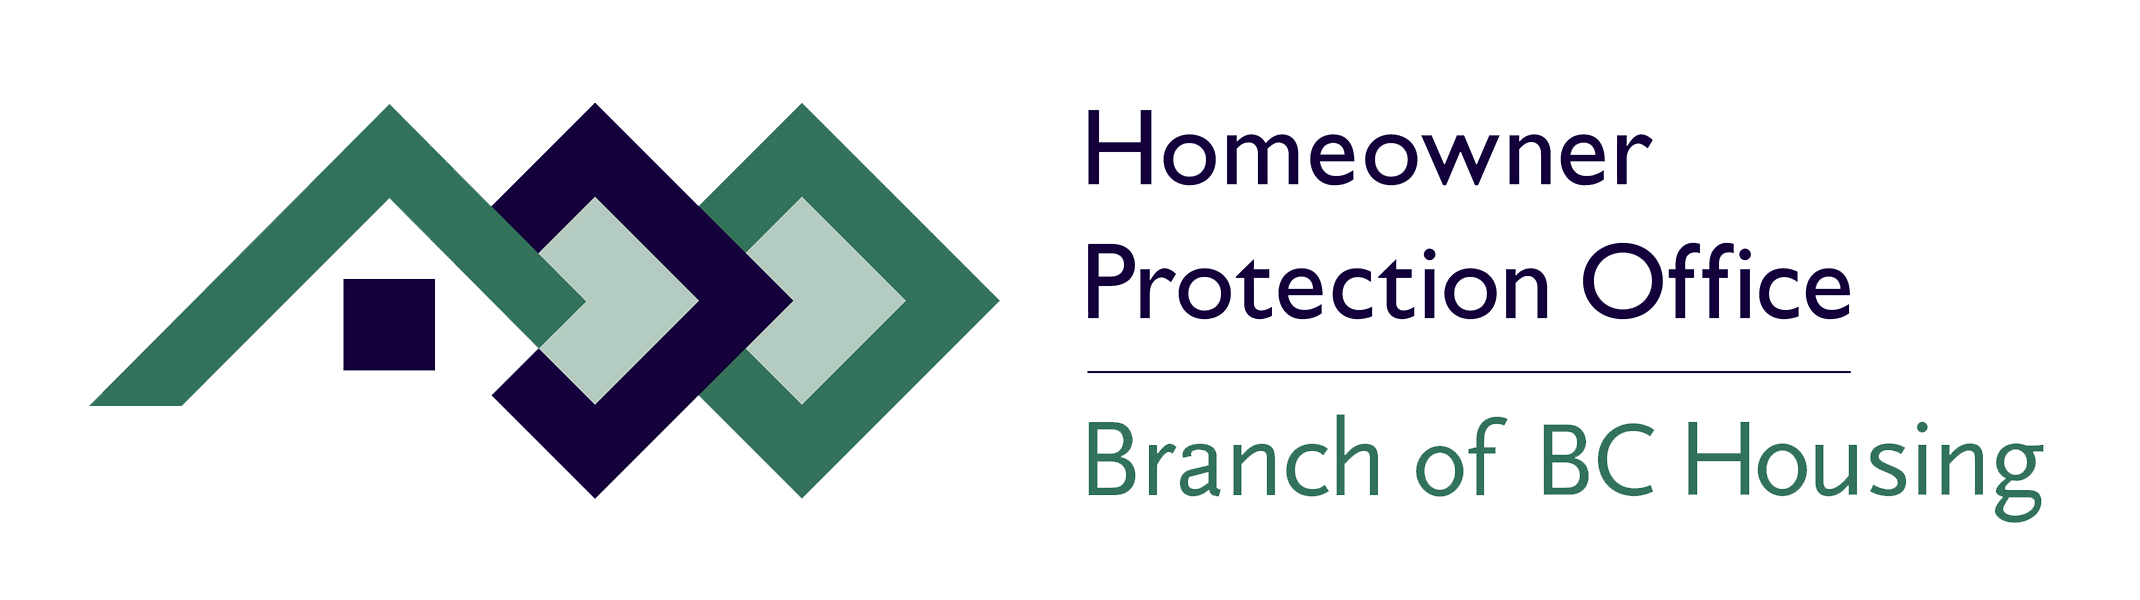 Homeowners Protection Office Branch of BC Housing logo